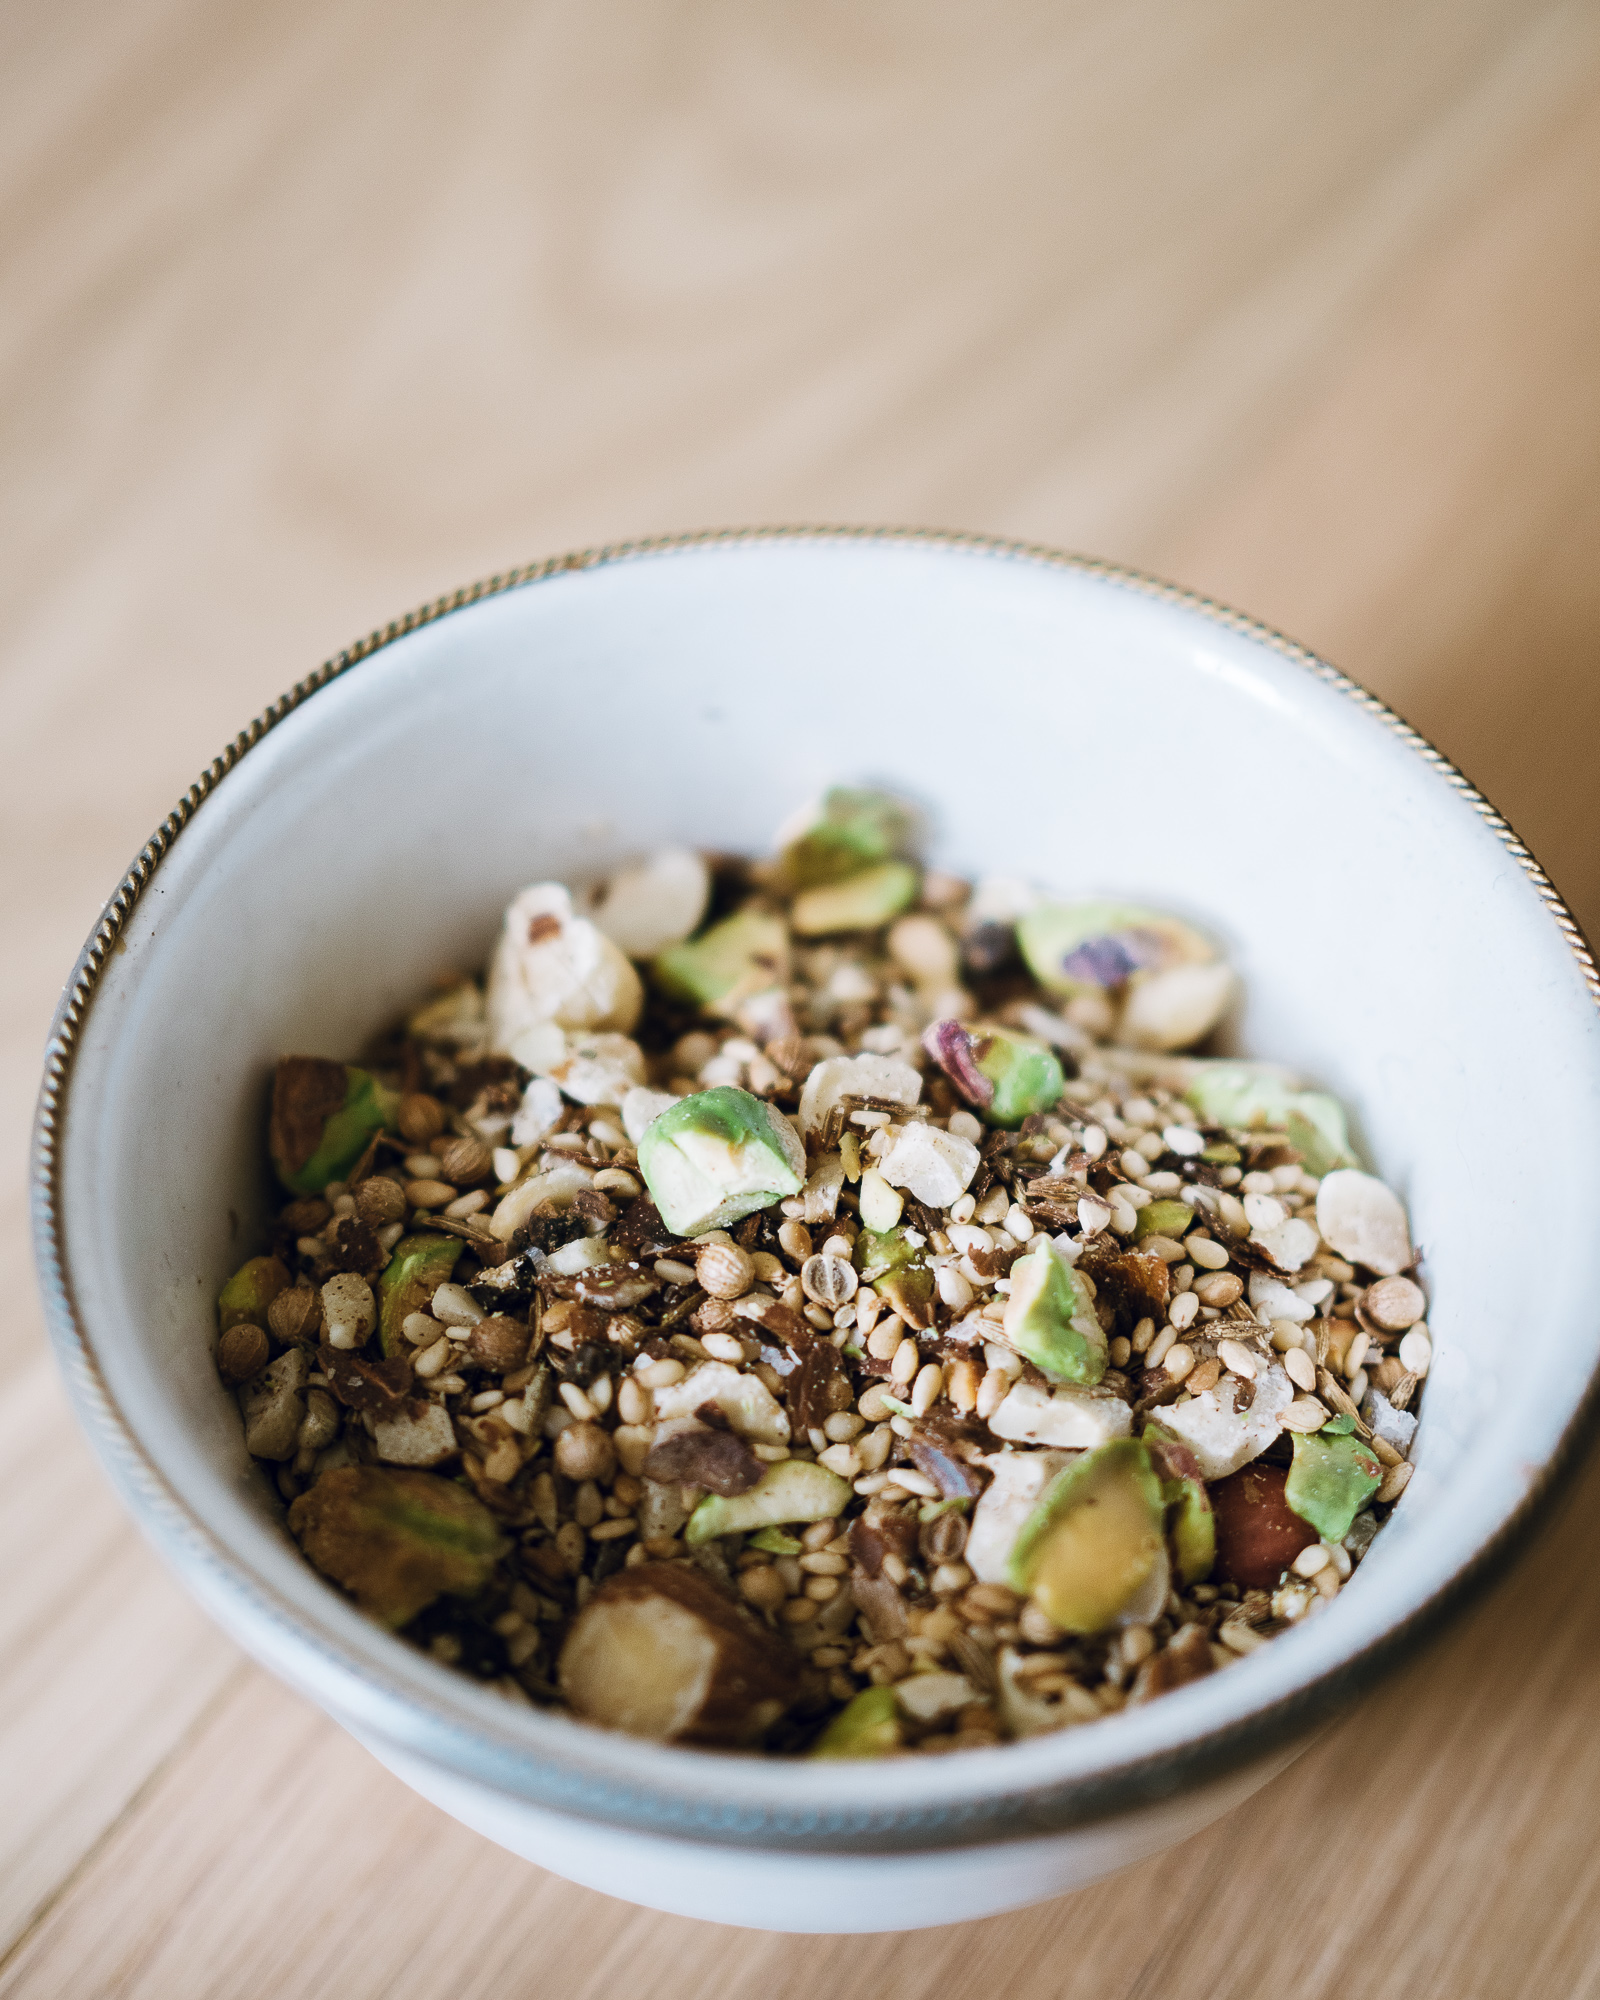 dukkah recipe in small white bowl